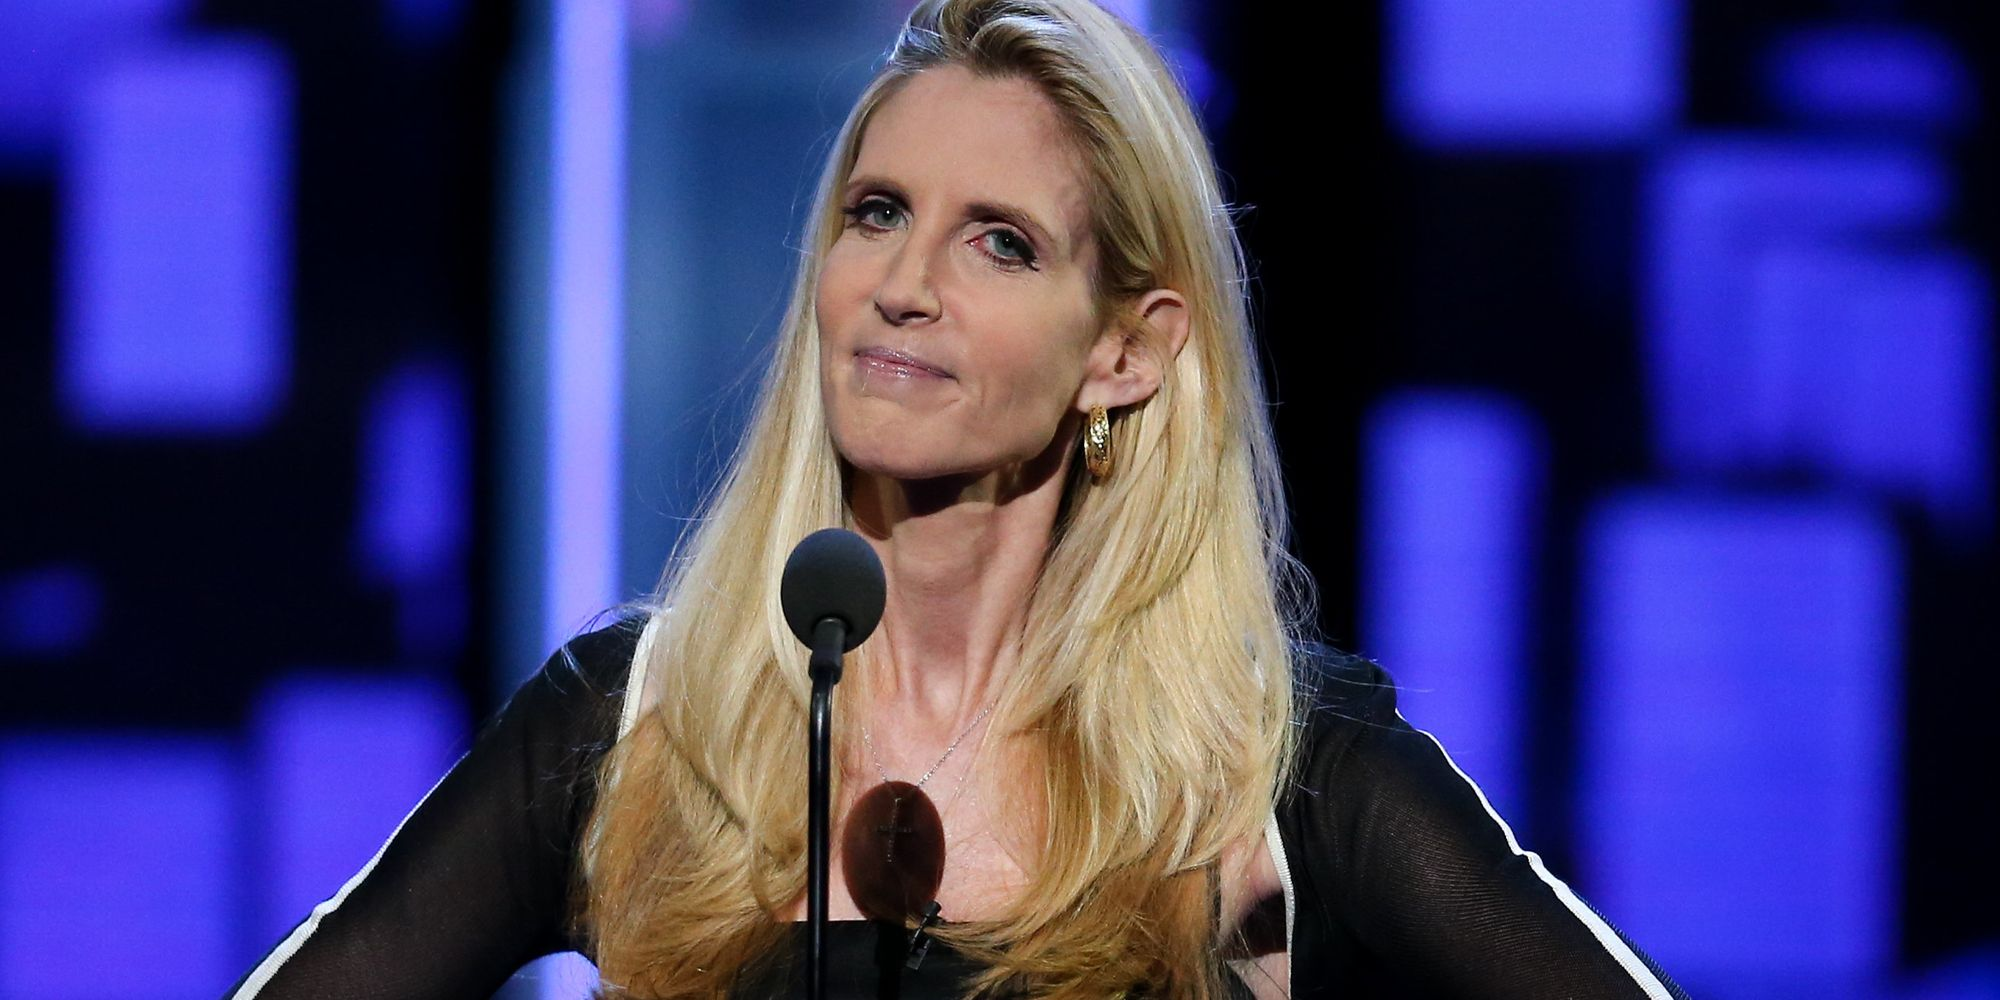 Ann Coulter Tries To Blame Comedy Central For Making Her Look Bad At Rob Lowe Roast